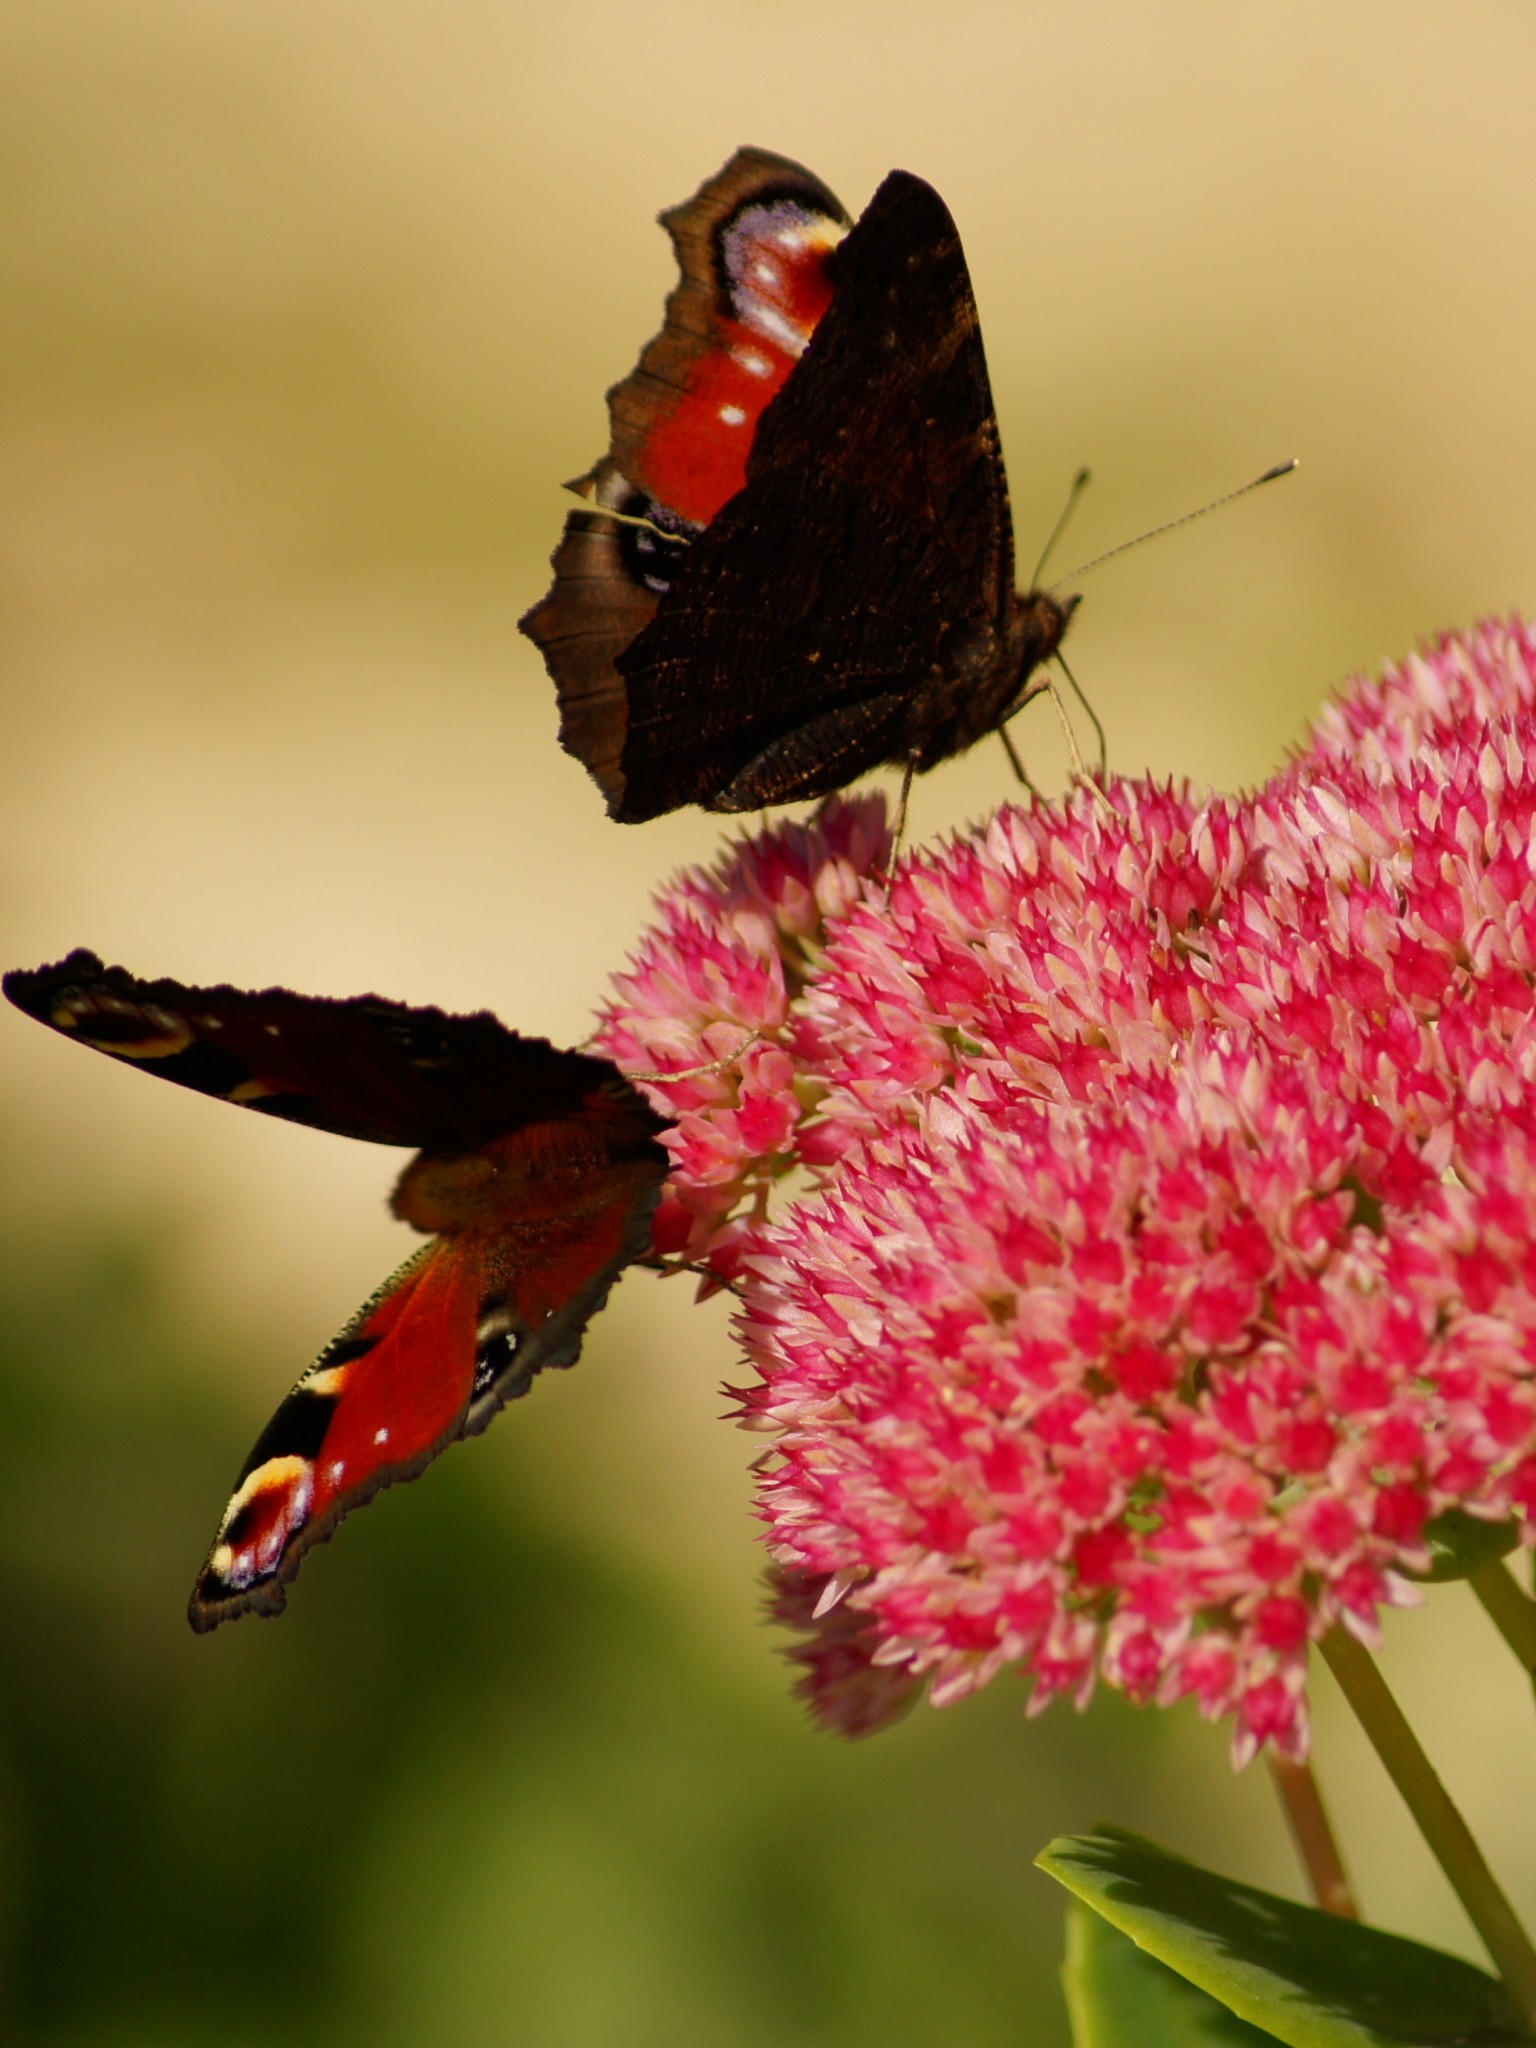 Download Pink Butterfly Hd Wallpaper, Pink Butterfly - Kupu Kupu Pasangan , HD Wallpaper & Backgrounds